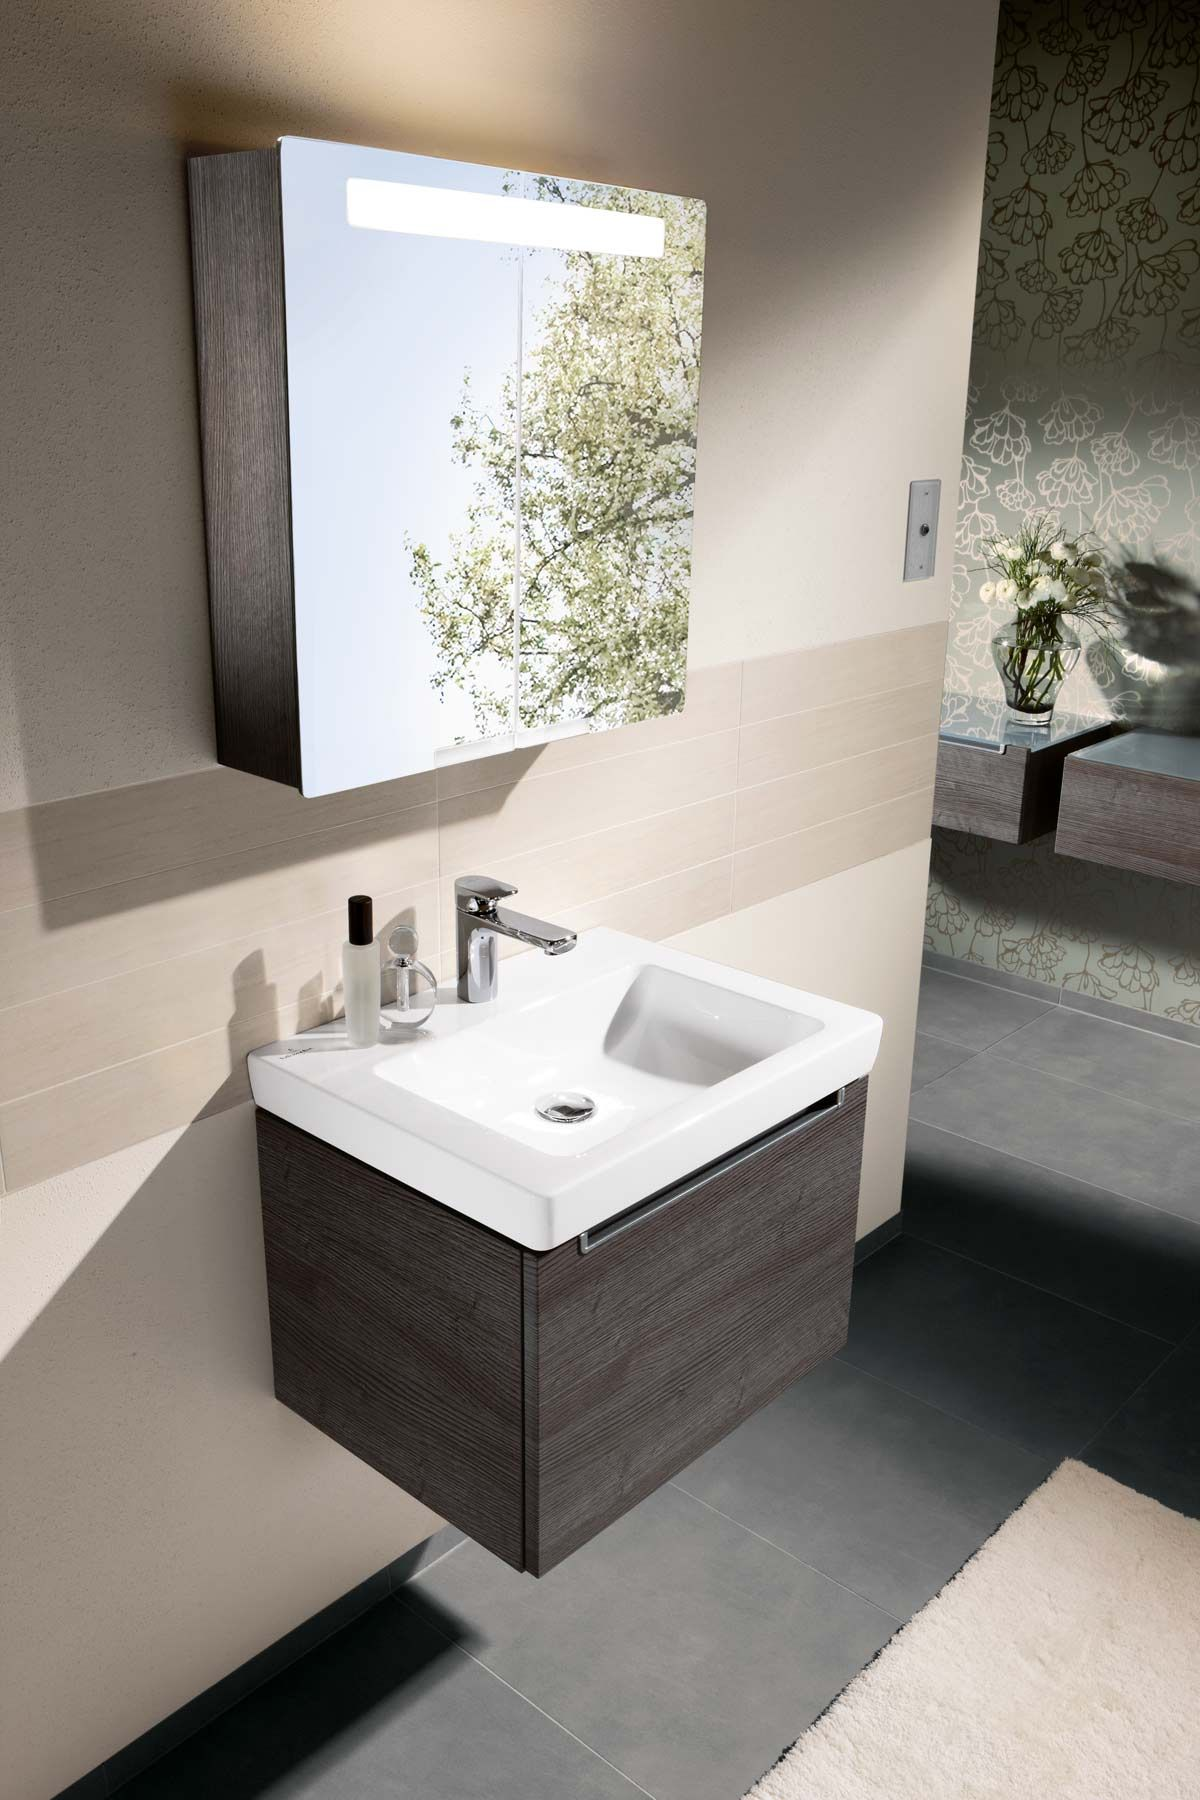 Villeroy And Boch Vanity villeroy & boch subway 2.0 furniture oak graphite | villeroy